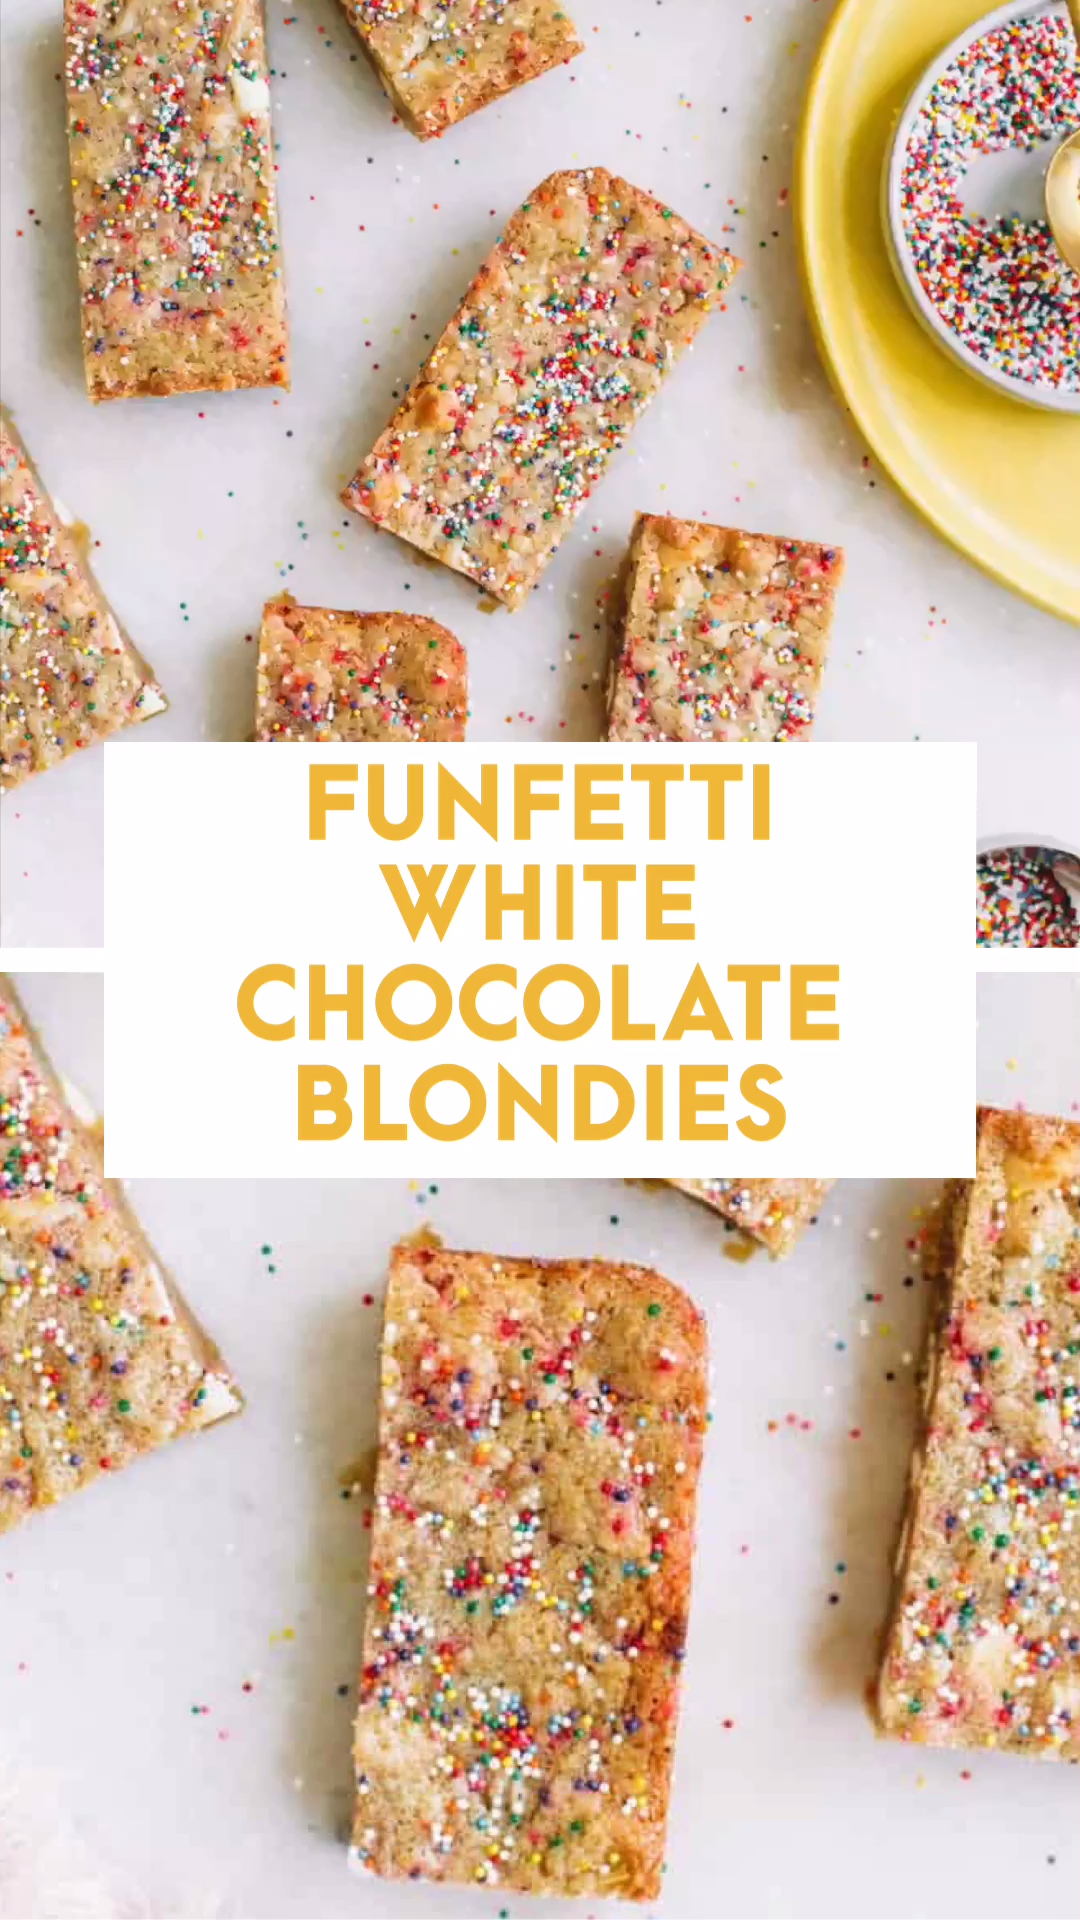 These Funfetti white chocolate blondie bars are a simple, easy rich dessert recipe. Not only are these chewy, gooey brown butter blondies perfect on their own we decided to amp them up with… SPRINKLES! #brownies #blondies #blondebrownies #brownbutter #blonde #sprinkles #funfetti